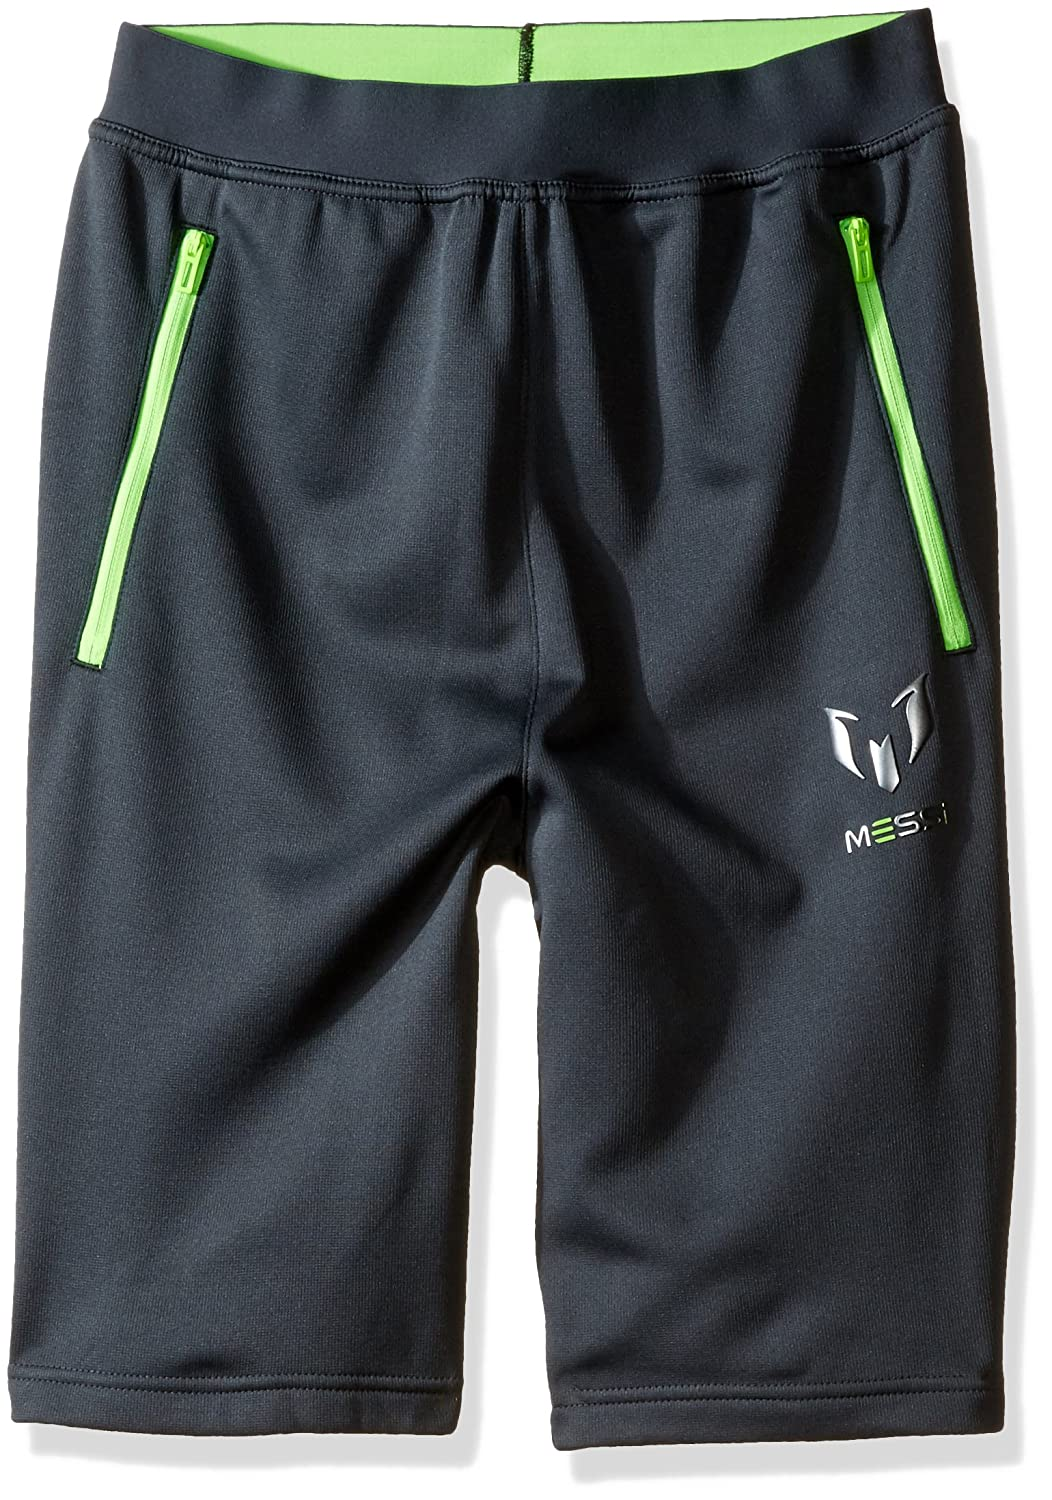 Adidas Boysサッカー少年のメッシBermuda Short X-Large Dark Grey/neon Green B01CGX265U